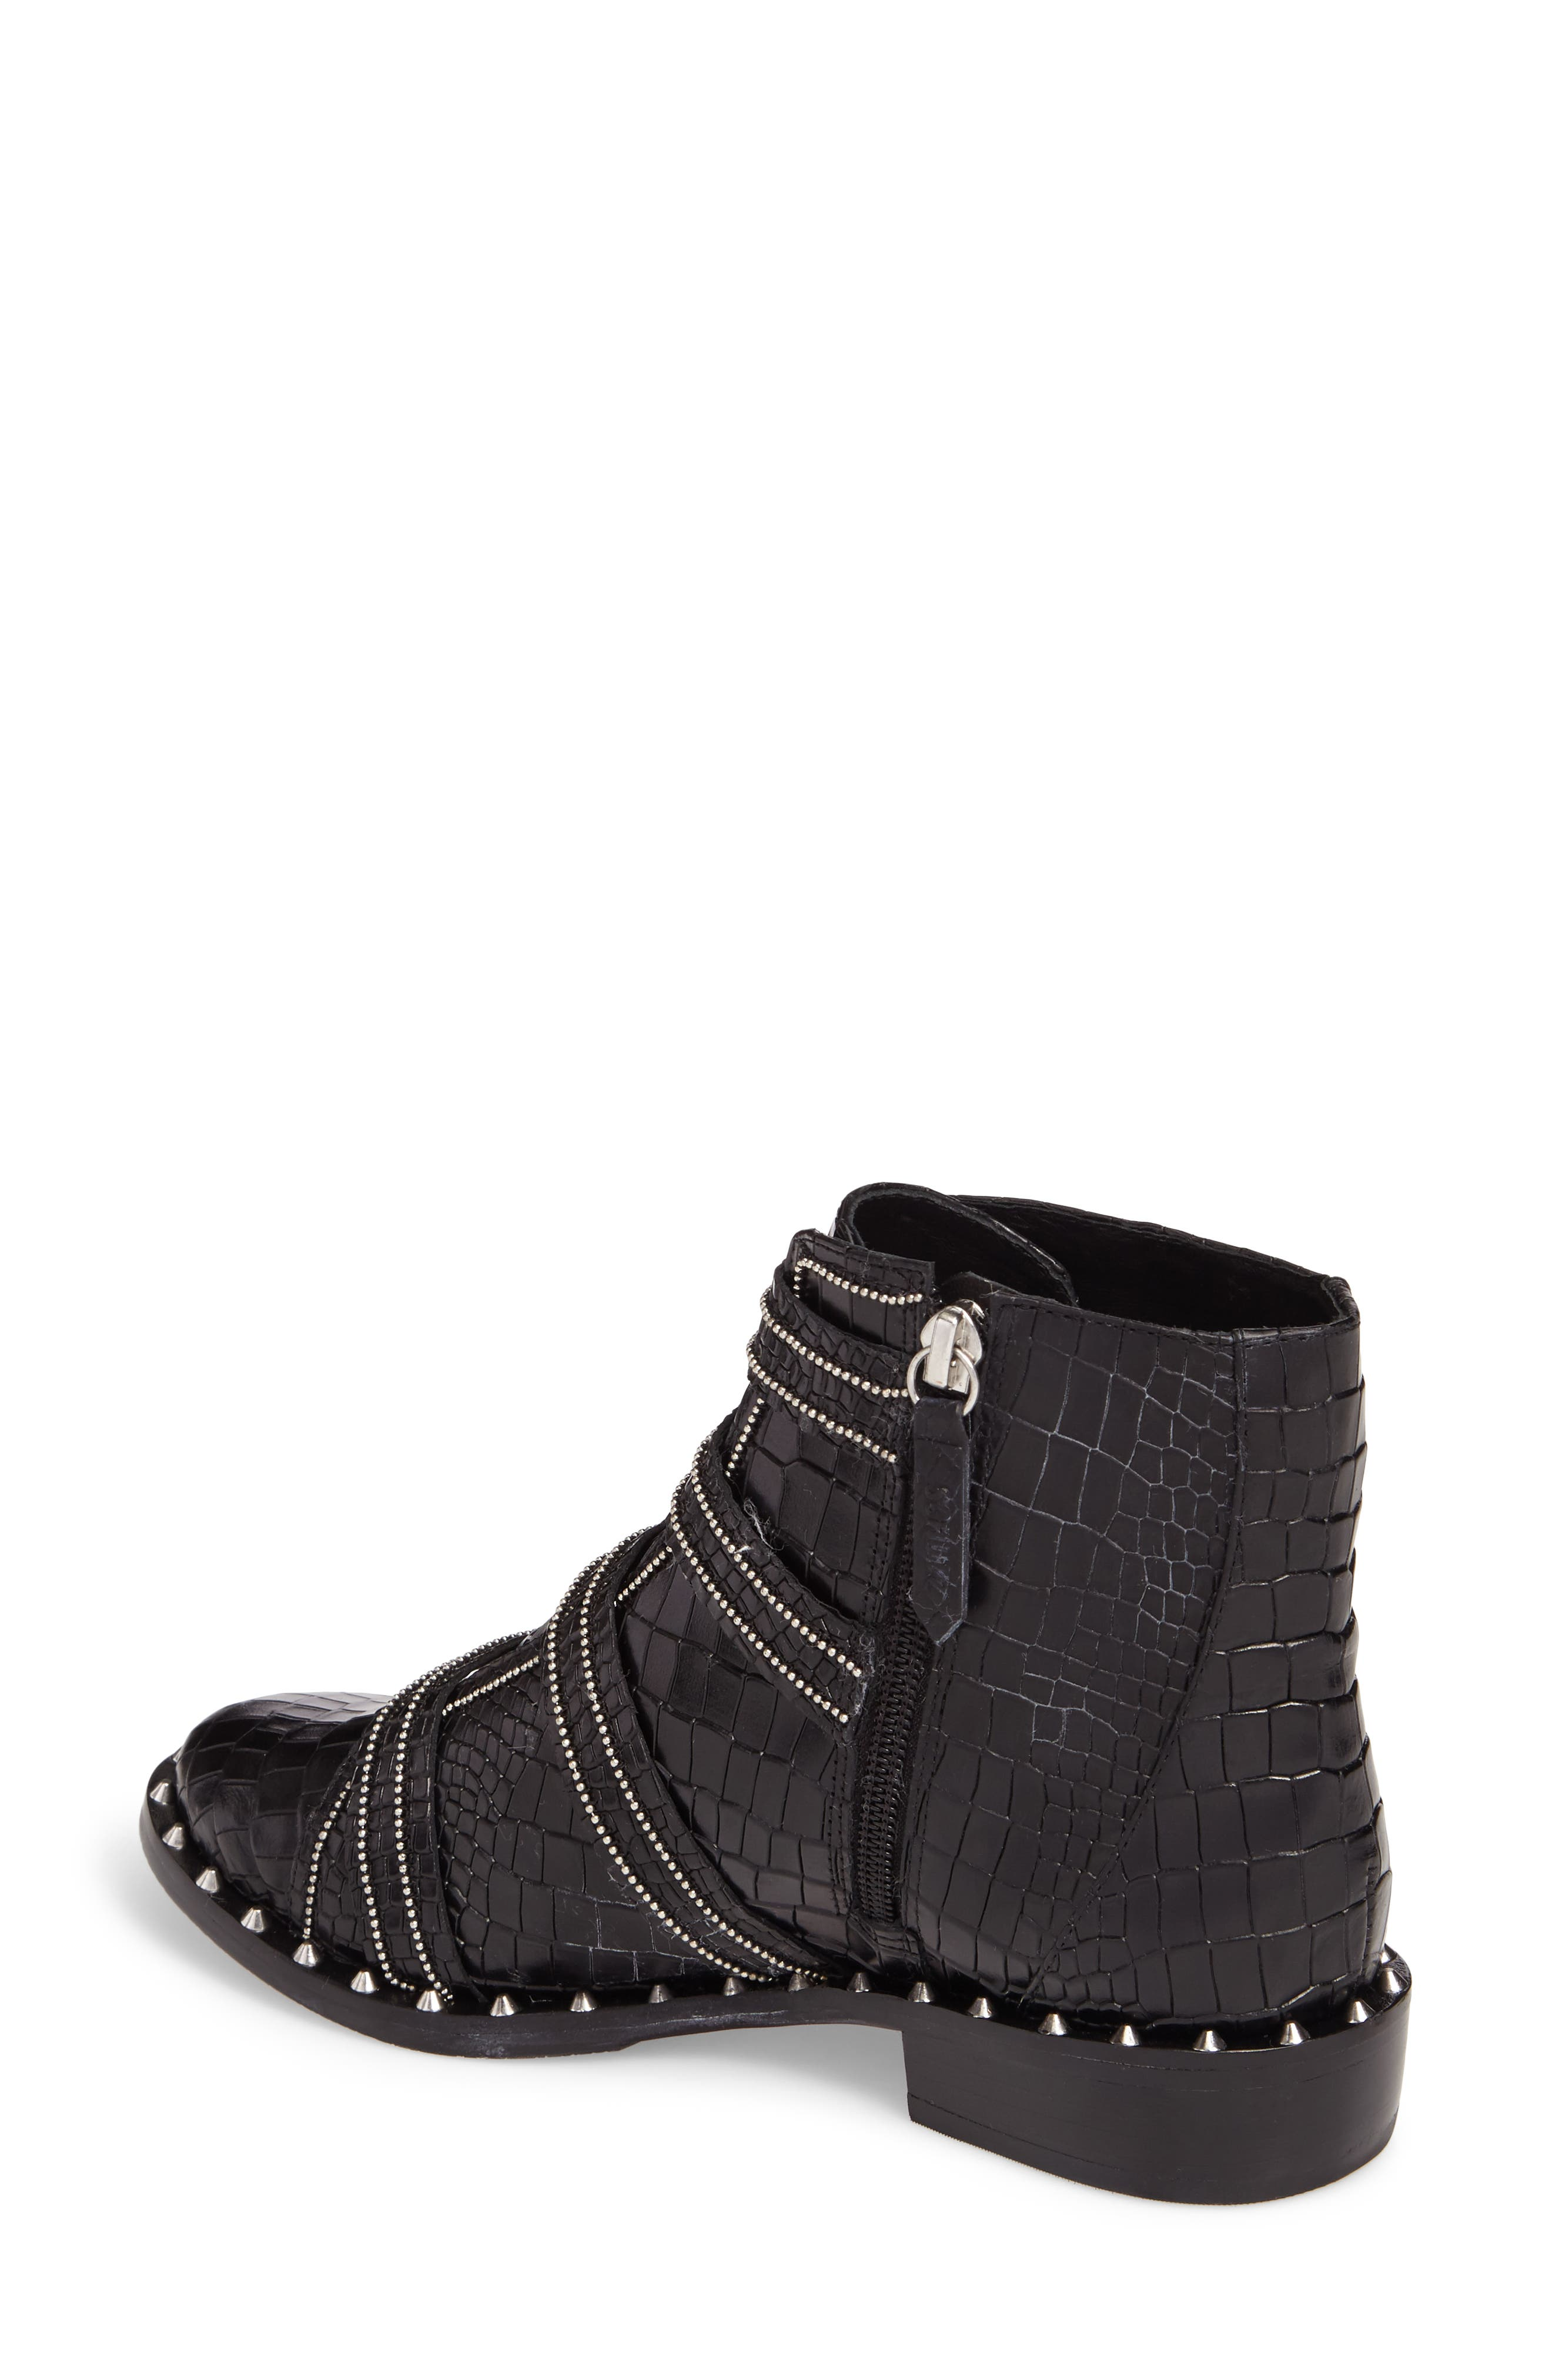 Darcey Studded Croc Embossed Bootie,                             Alternate thumbnail 2, color,                             001